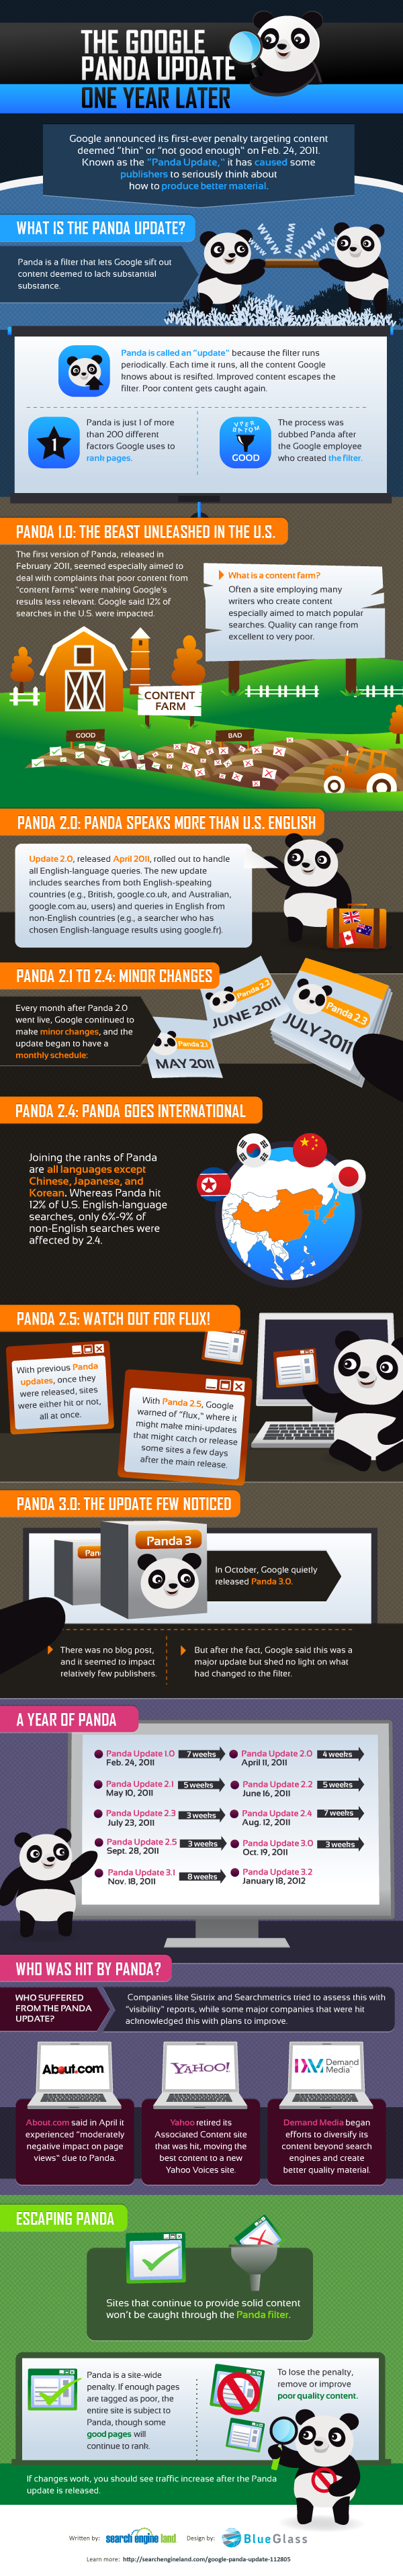 The-Google-Panda-Update,-One-Year-Later-infographic